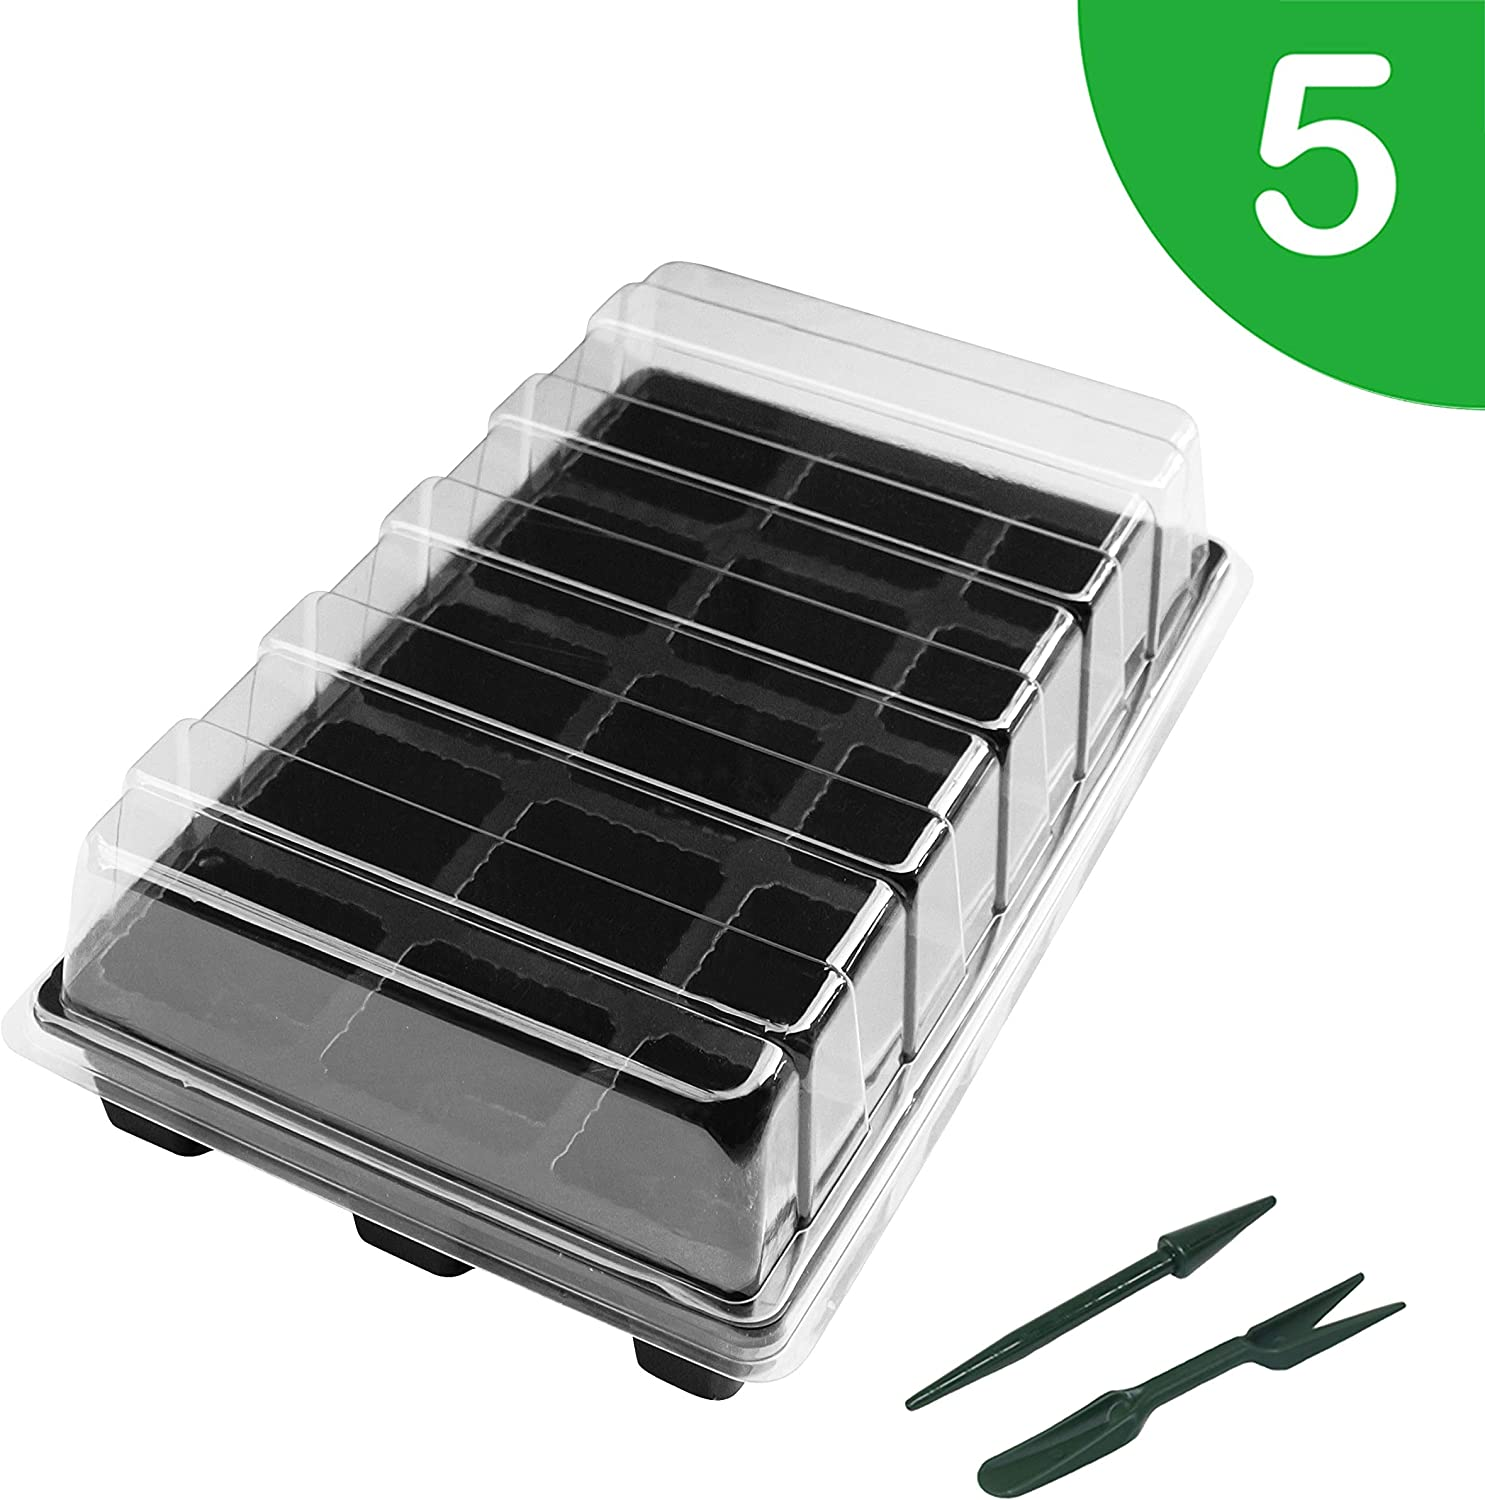 "Gardzen 5-Set Garden Propagator Set, Seed Tray Kits with 75-Cell, Seed Starter Tray with Dome and Base 15"" x 9"" (15-Cell Per Tray)"